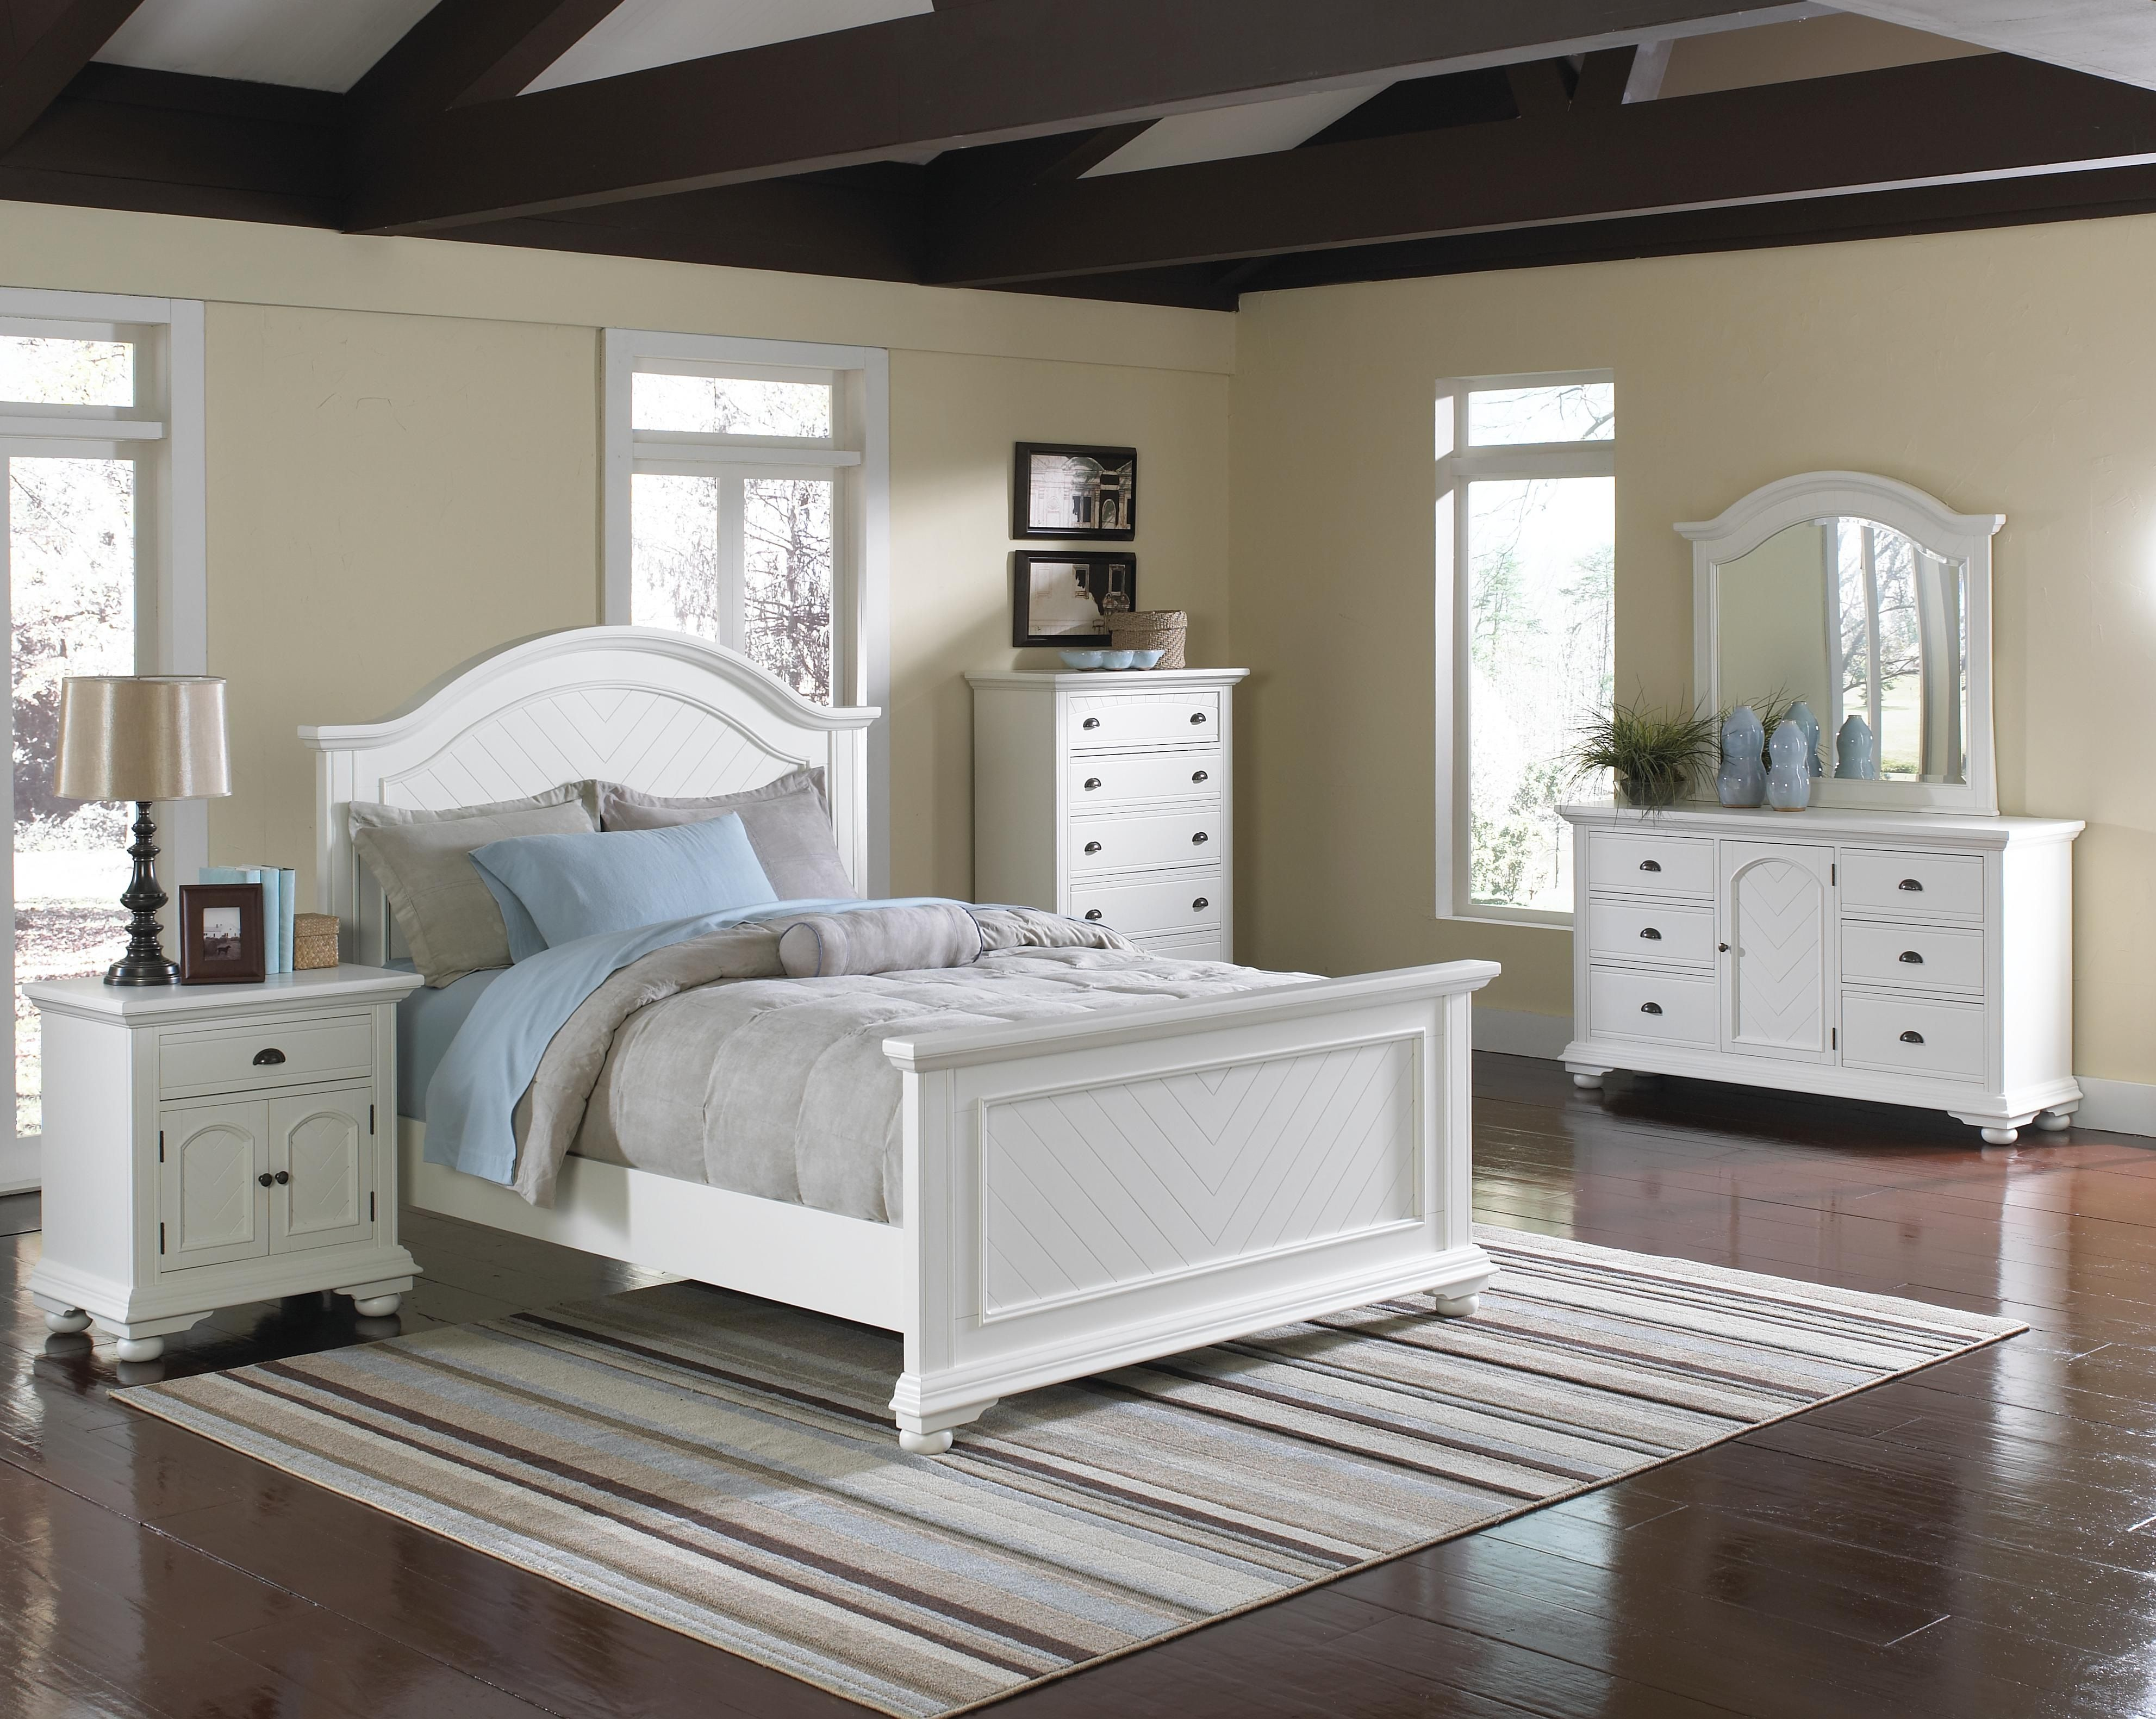 Beautiful pine bedroom 6pc set. Contemporary design inspired and